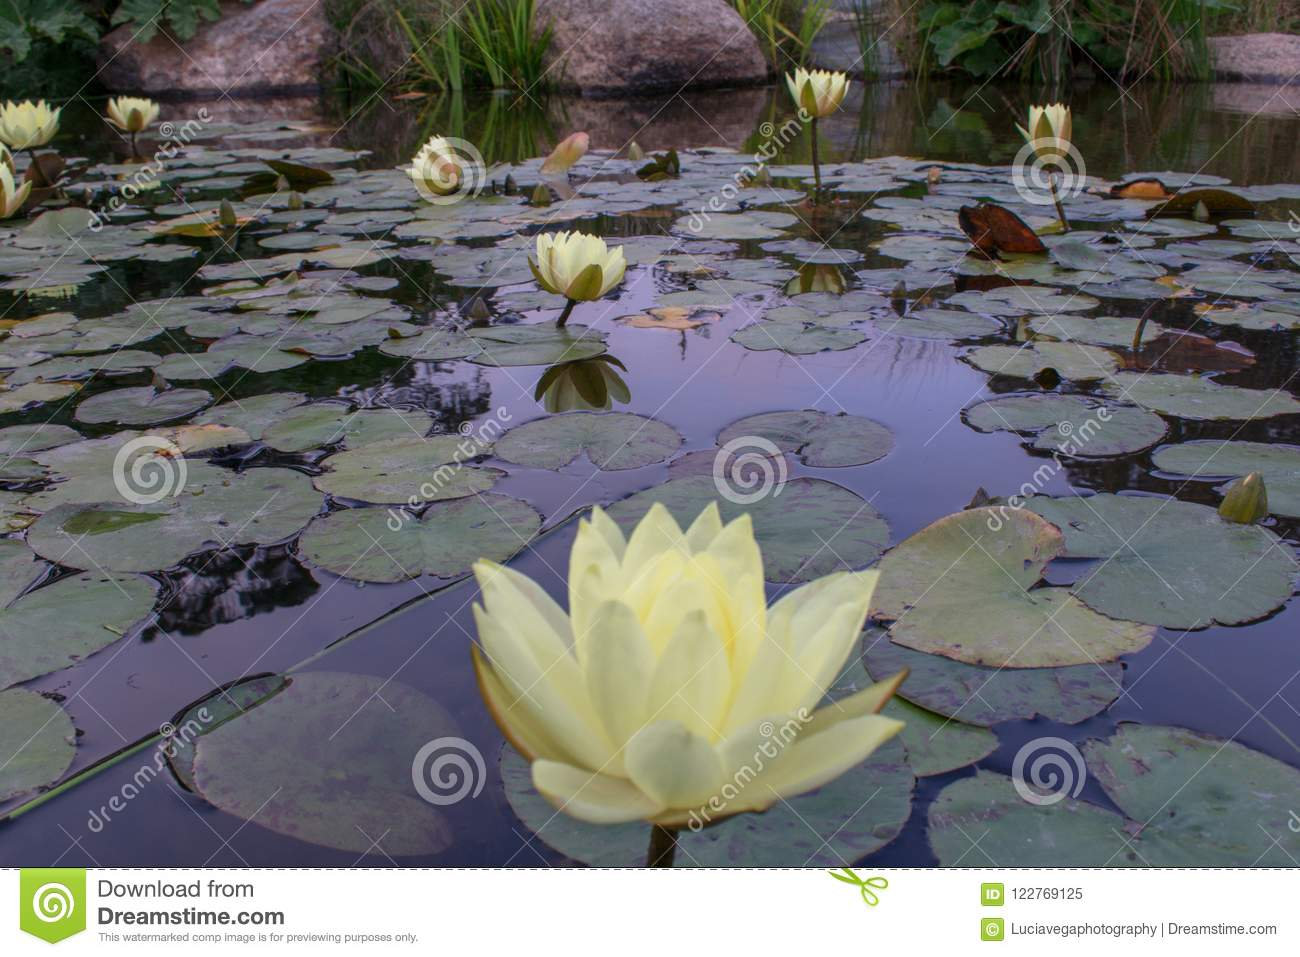 Rising lotus flowers from a fountain stock image image of download rising lotus flowers from a fountain stock image image of background lotus izmirmasajfo